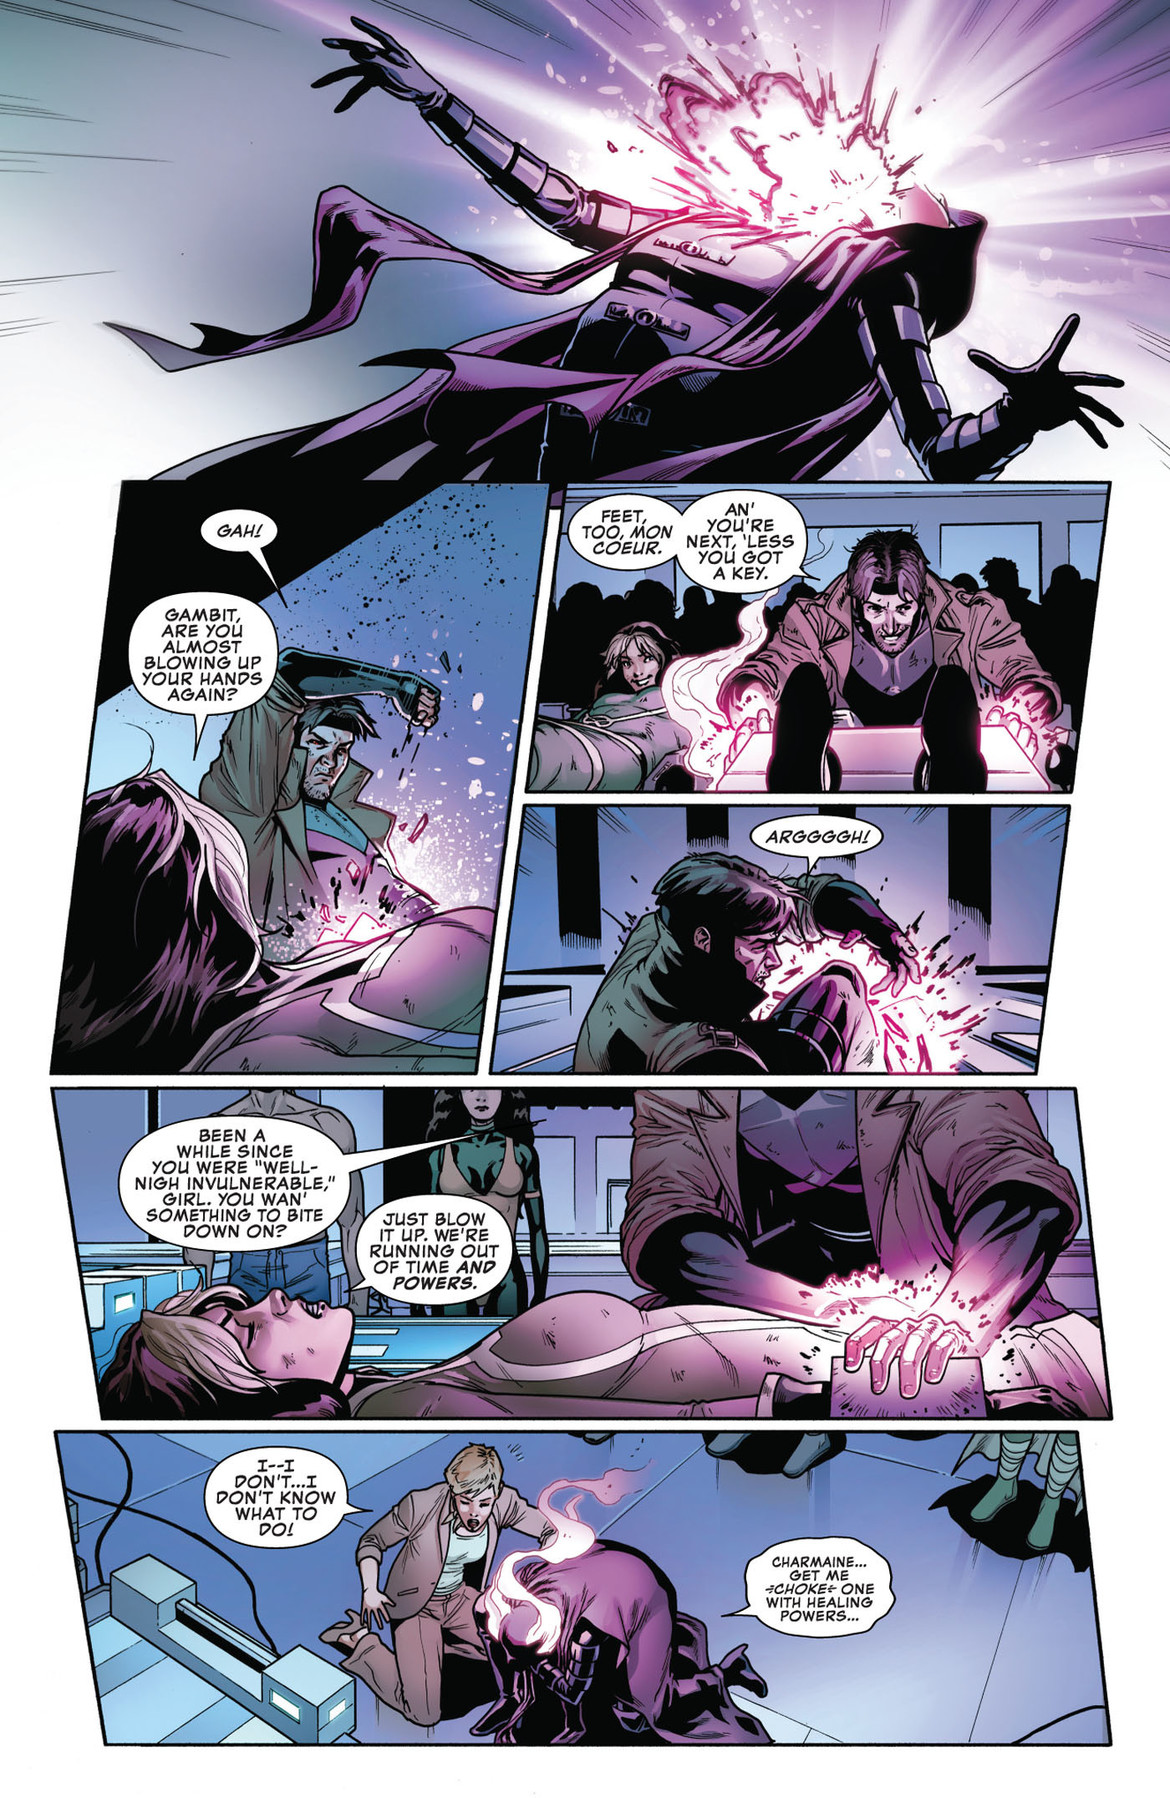 rogue_and_gambit_4_page_4.jpg